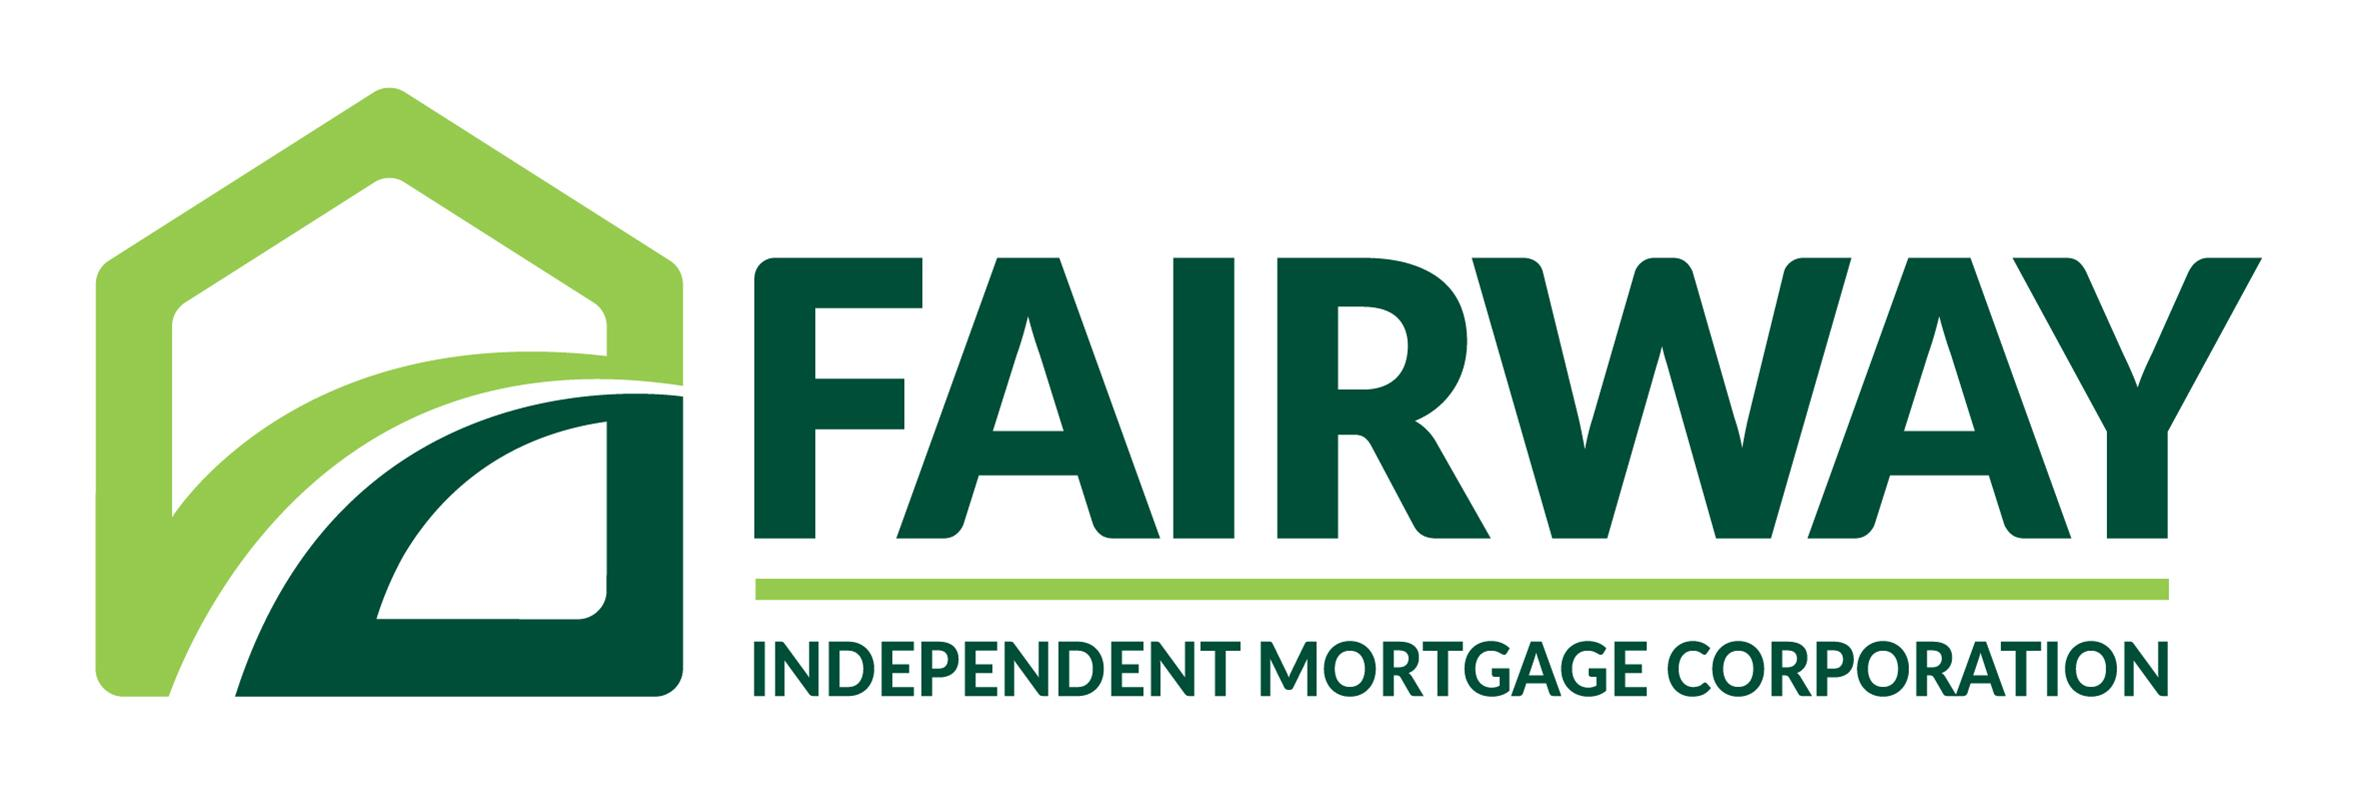 Company Logo Fairway Independent Mortgage